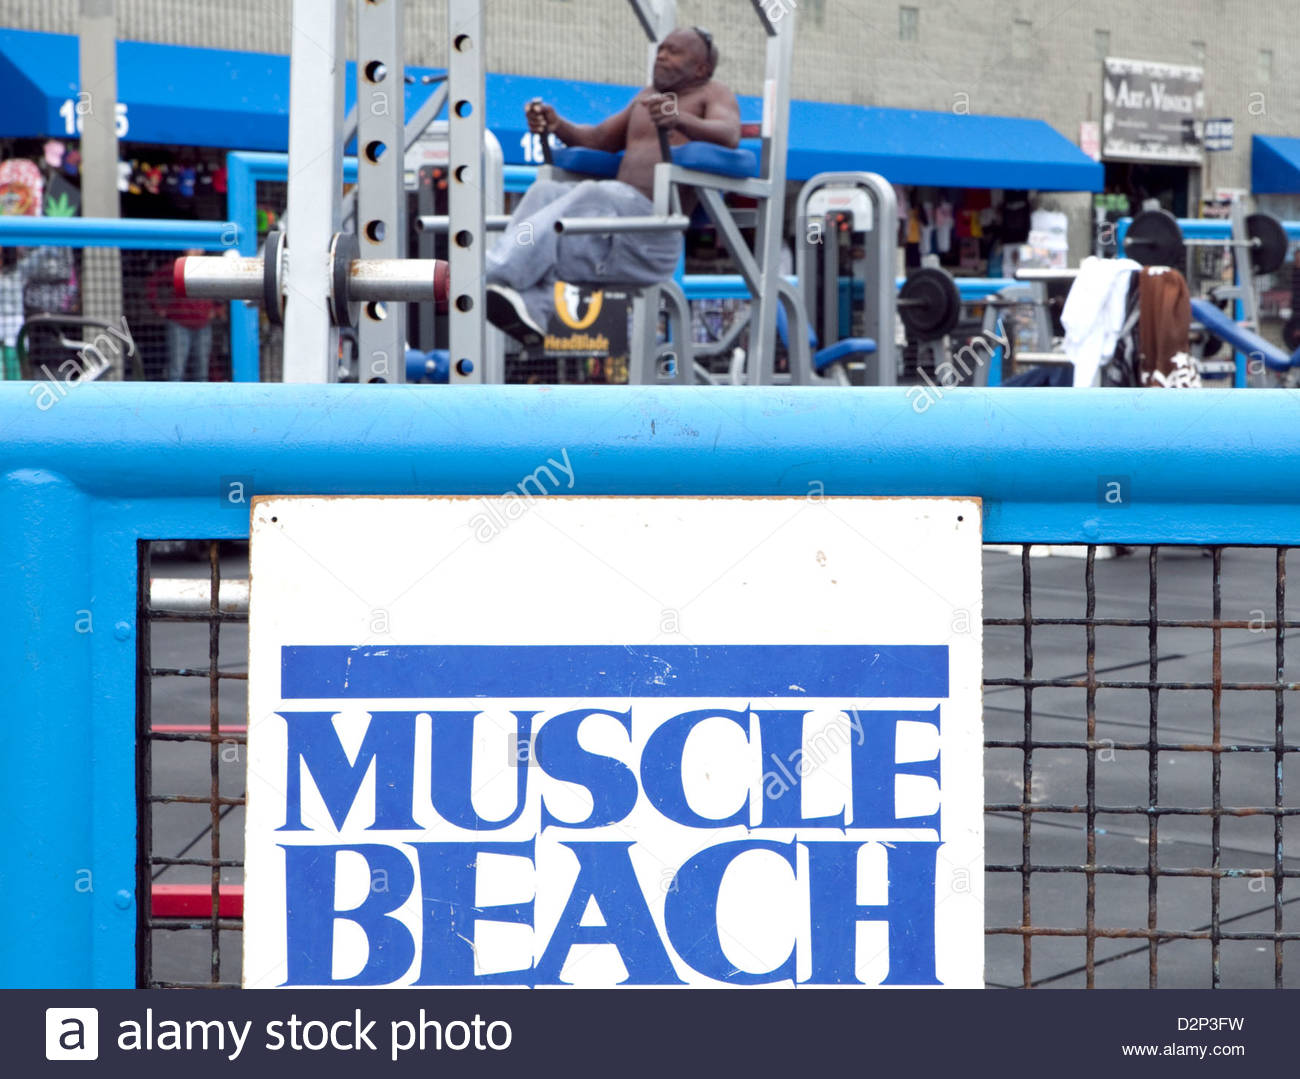 Venice Beach Gym Stock Photos Venice Beach Gym Stock Images   Alamy 1300x1079